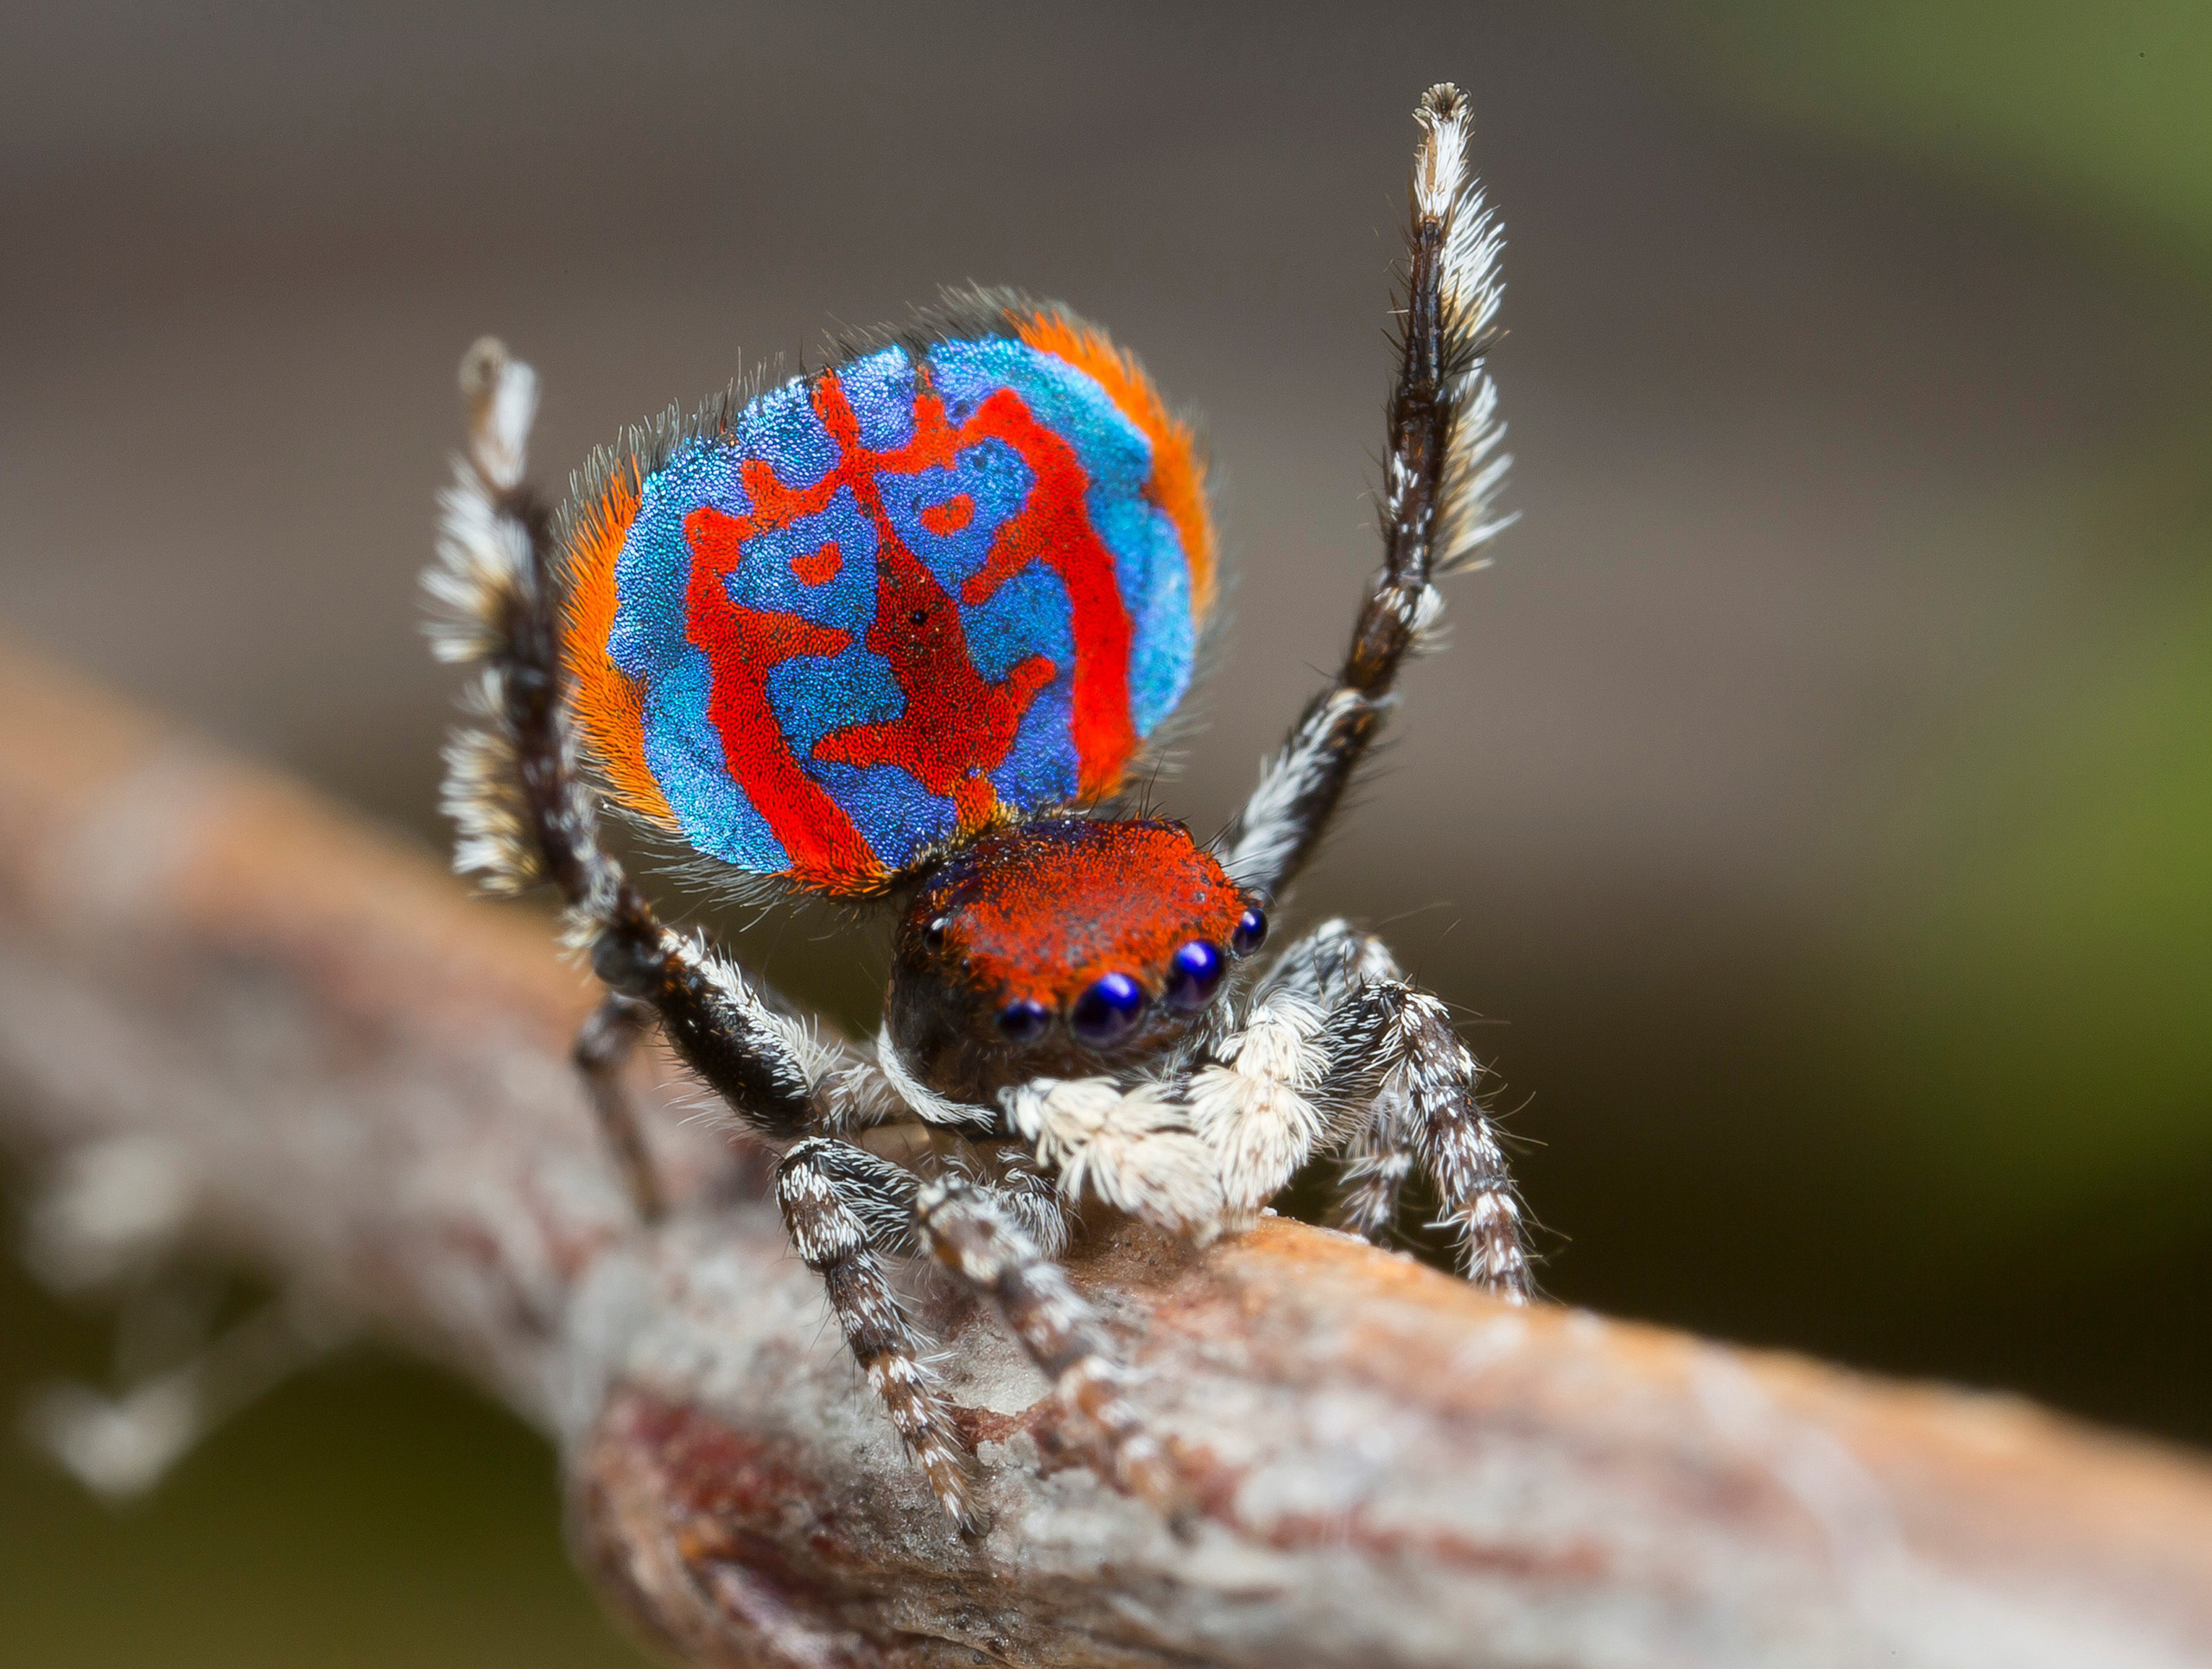 A specimen of the newly-discovered Australian Peacock spider, Maratus Bubo, shows off his colourful abdomen. Bubo, is the genus name for horned owls, a reference to the owl-like pattern on this spider's abdomen.